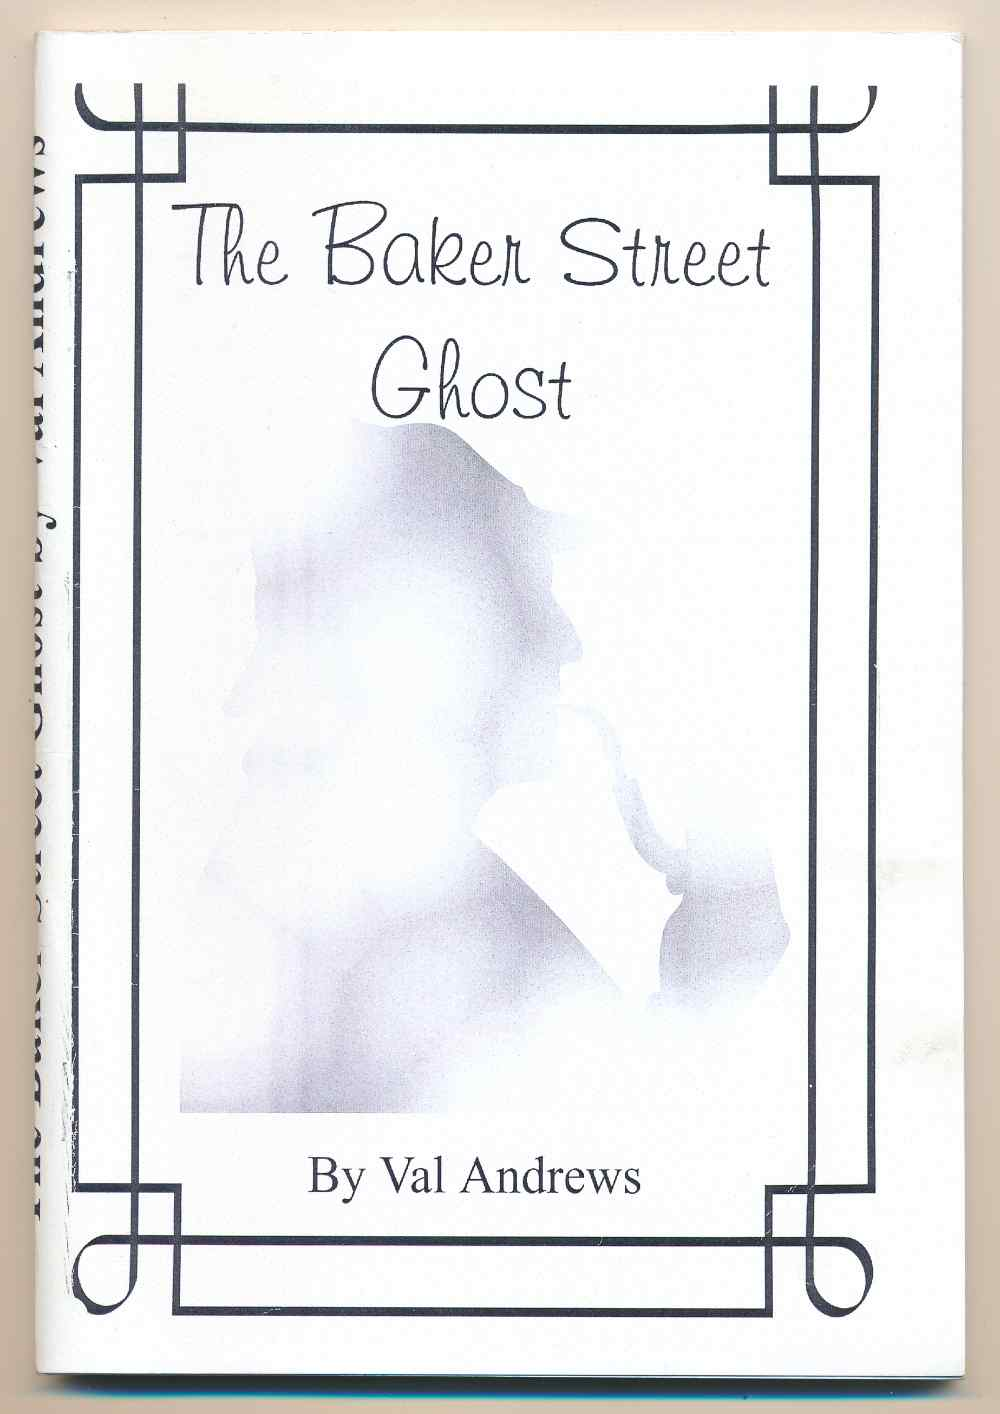 The Baker Street ghost